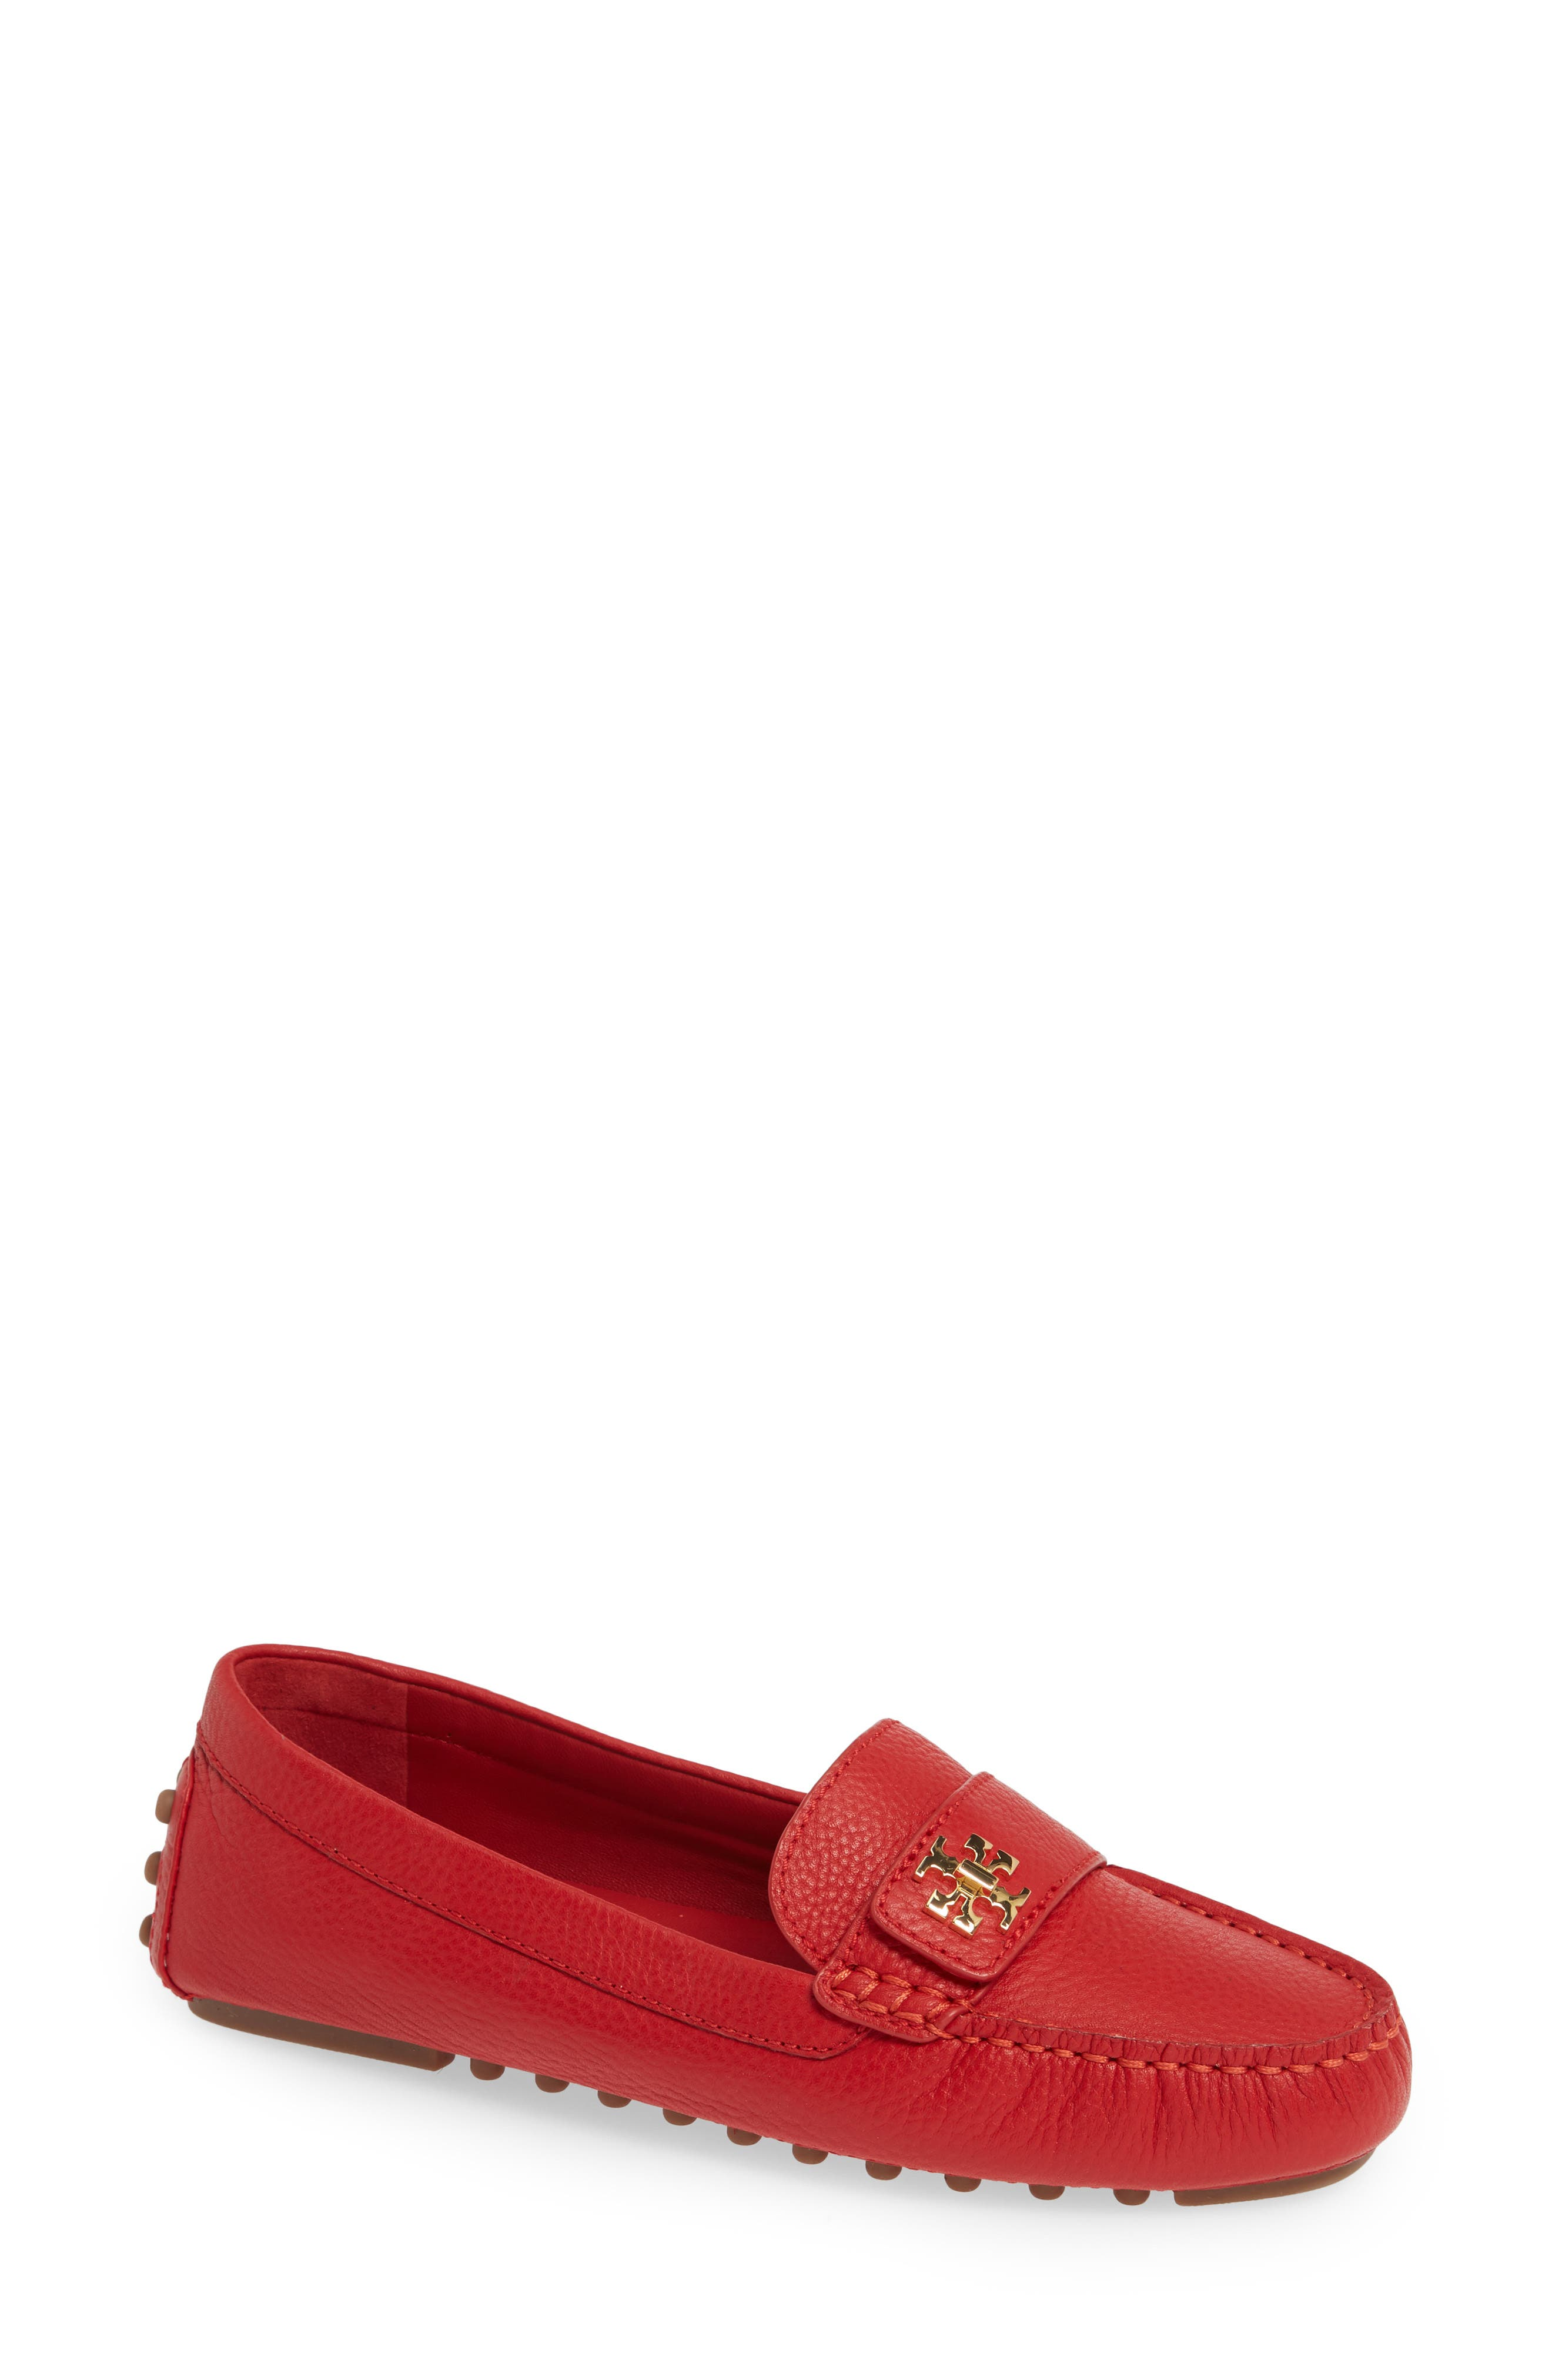 Kira Driving Loafer in Ruby Red